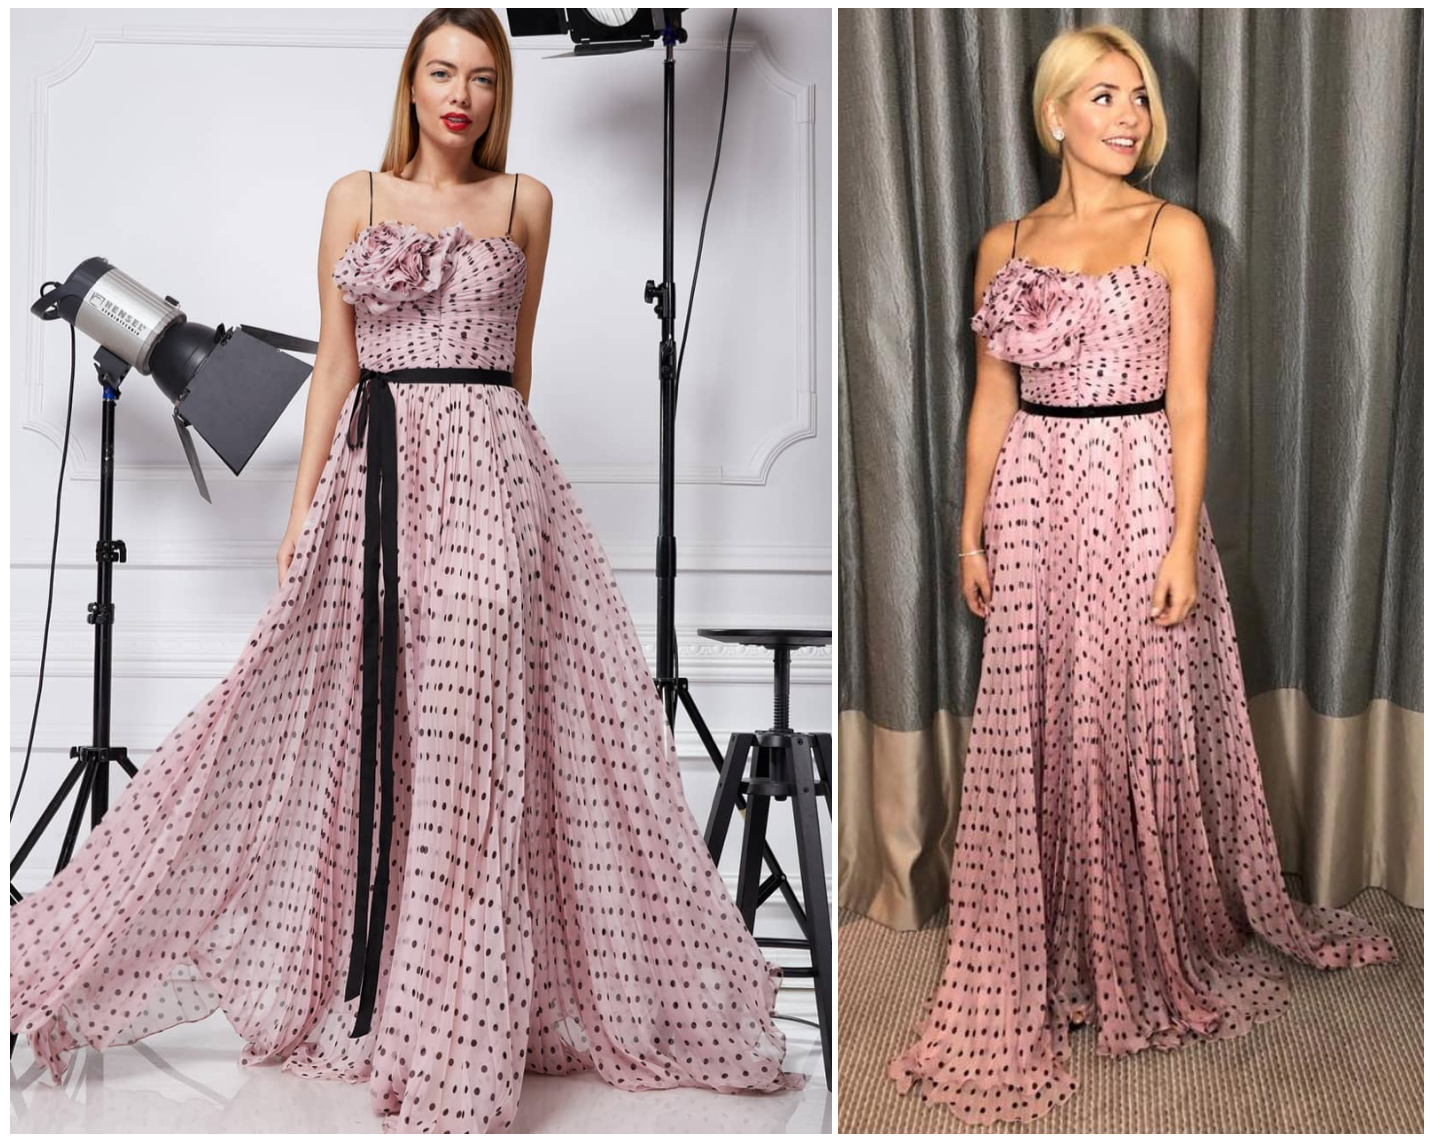 Holly Willoughby attending at the Red Carpet National Televison Awards in our Selena silk pleated dots